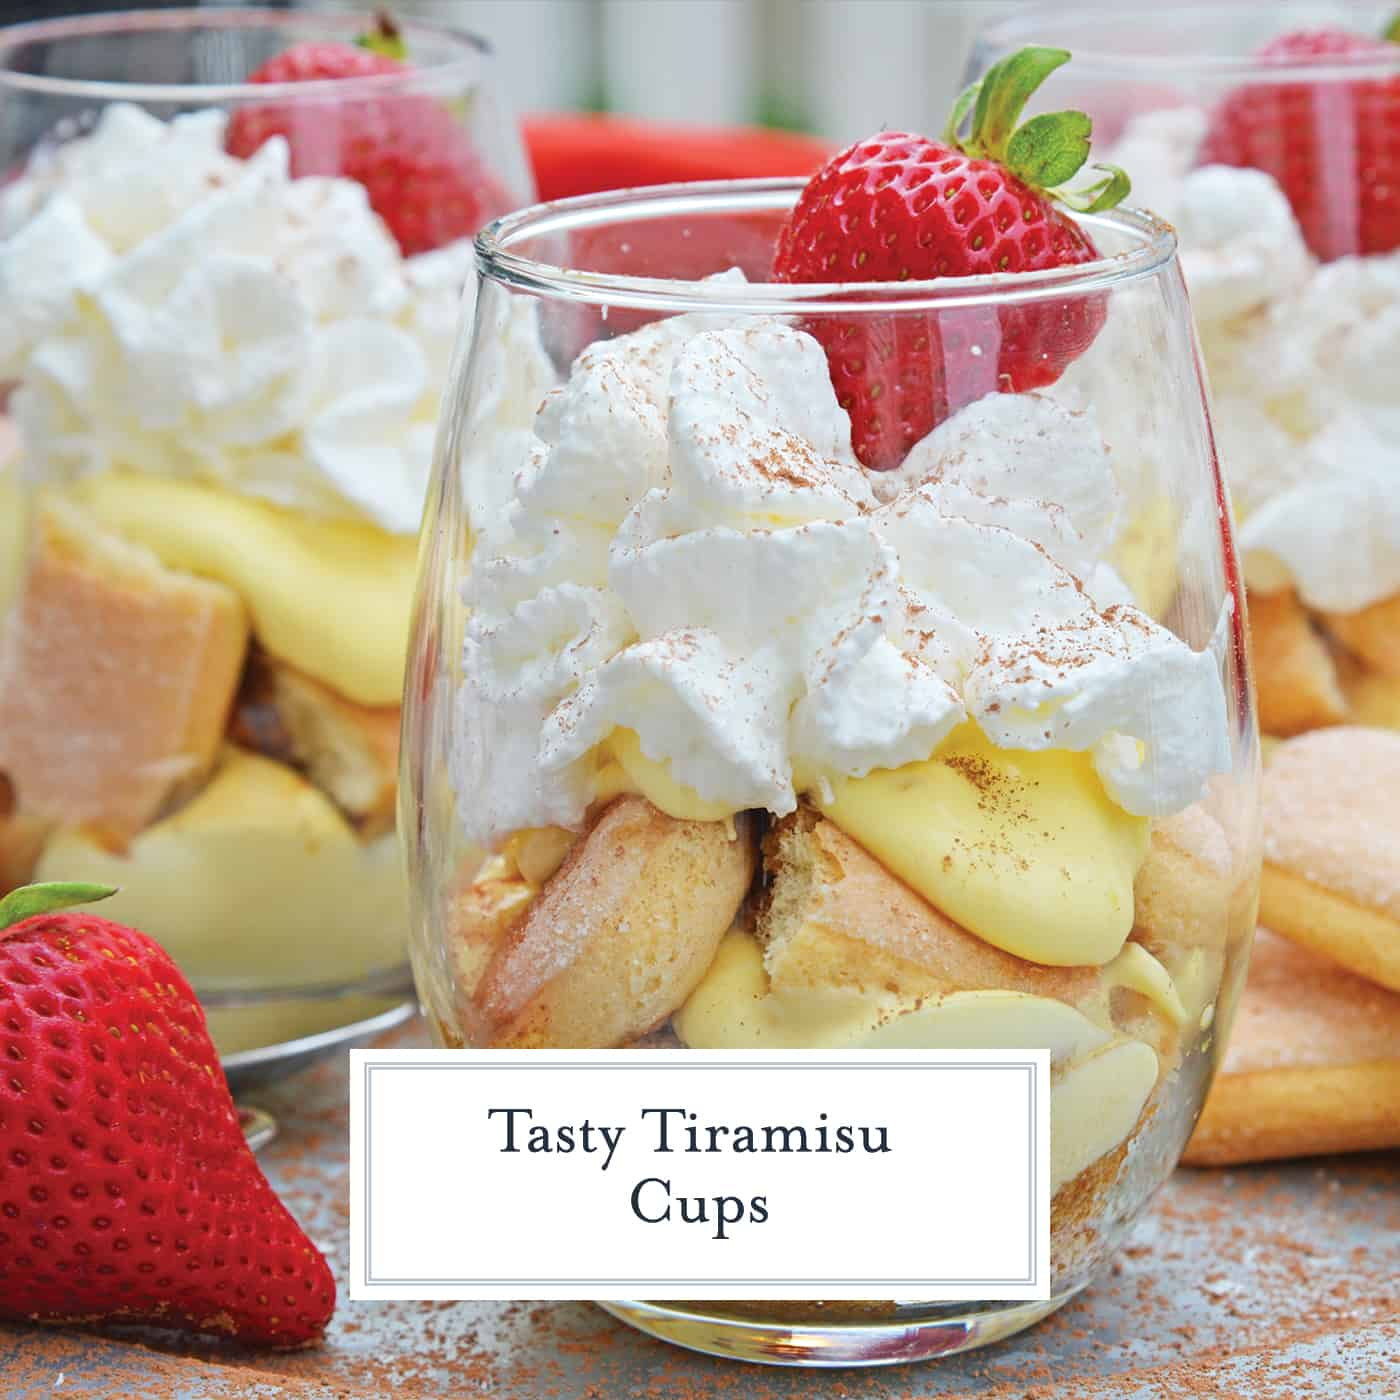 Tiramisu Cups are an easy, make-ahead dessert recipes layering mascarpone custard with espresso soaked lady finger cookies and whipped cream. #easytiramisurecipe #tiramisucups www.savoryexperiments.com